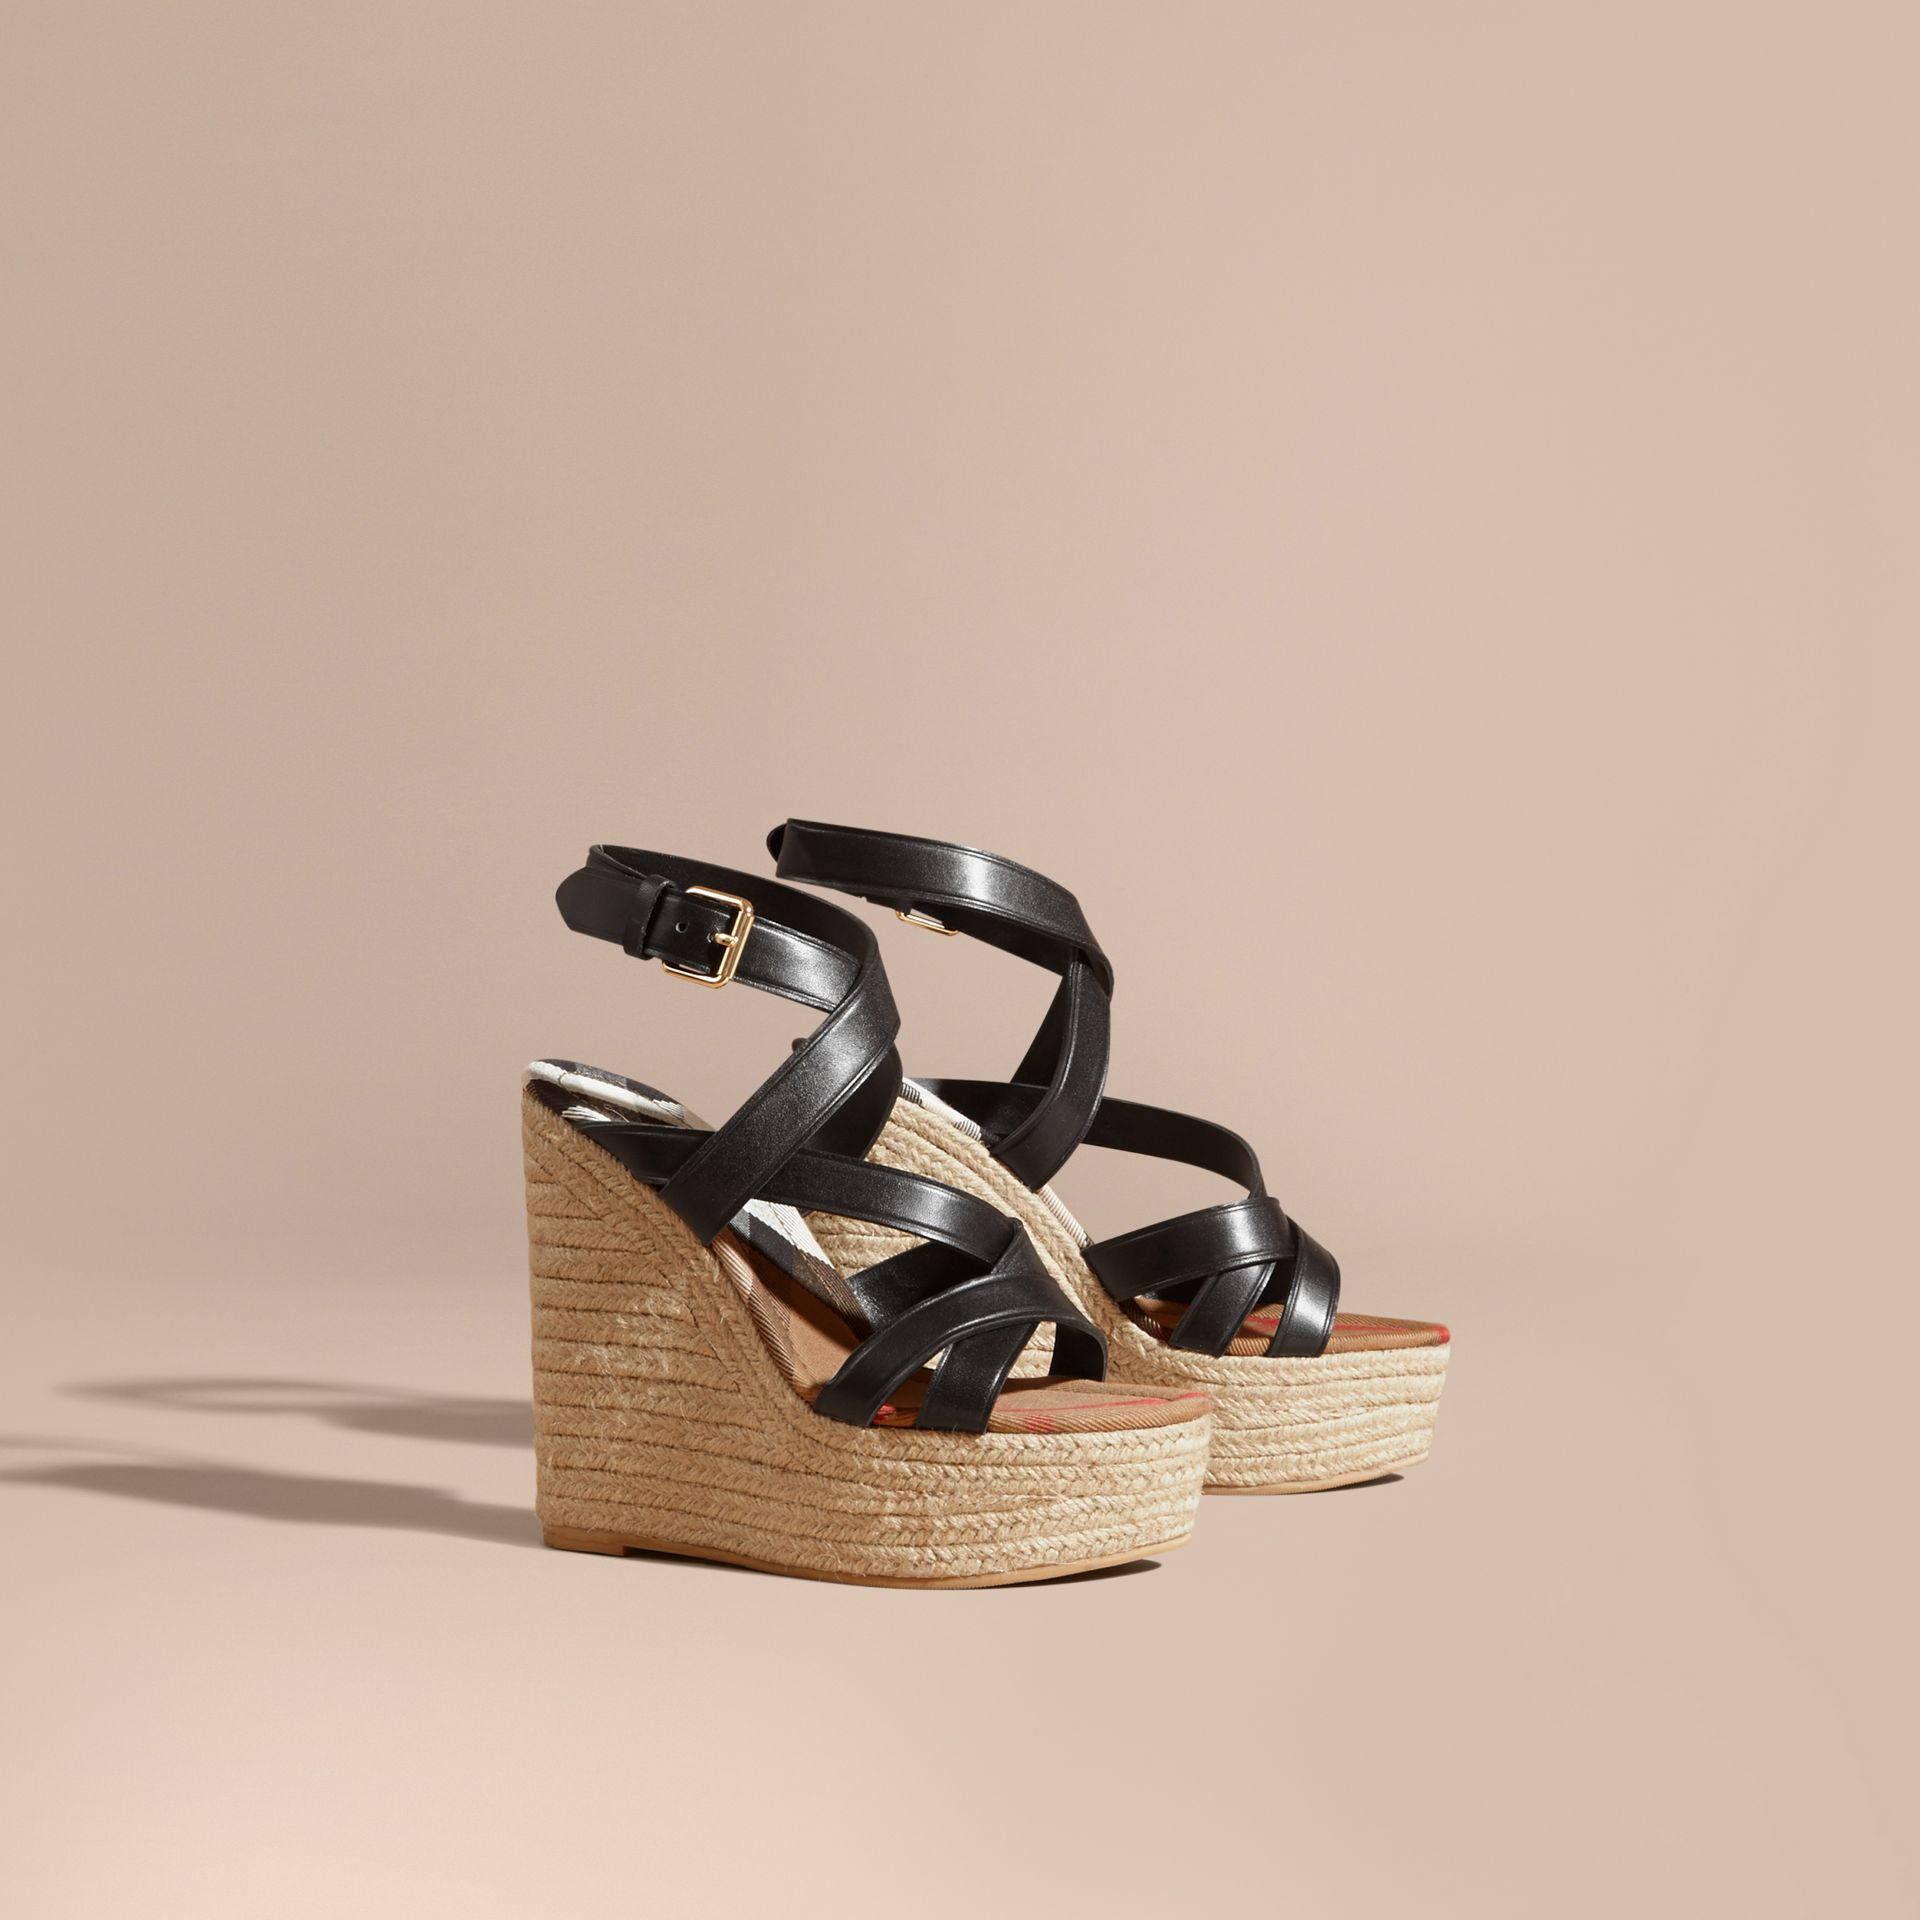 Leather Platform Espadrille Wedge Sandals in Black - Women | Burberry Canada - gallery image 1